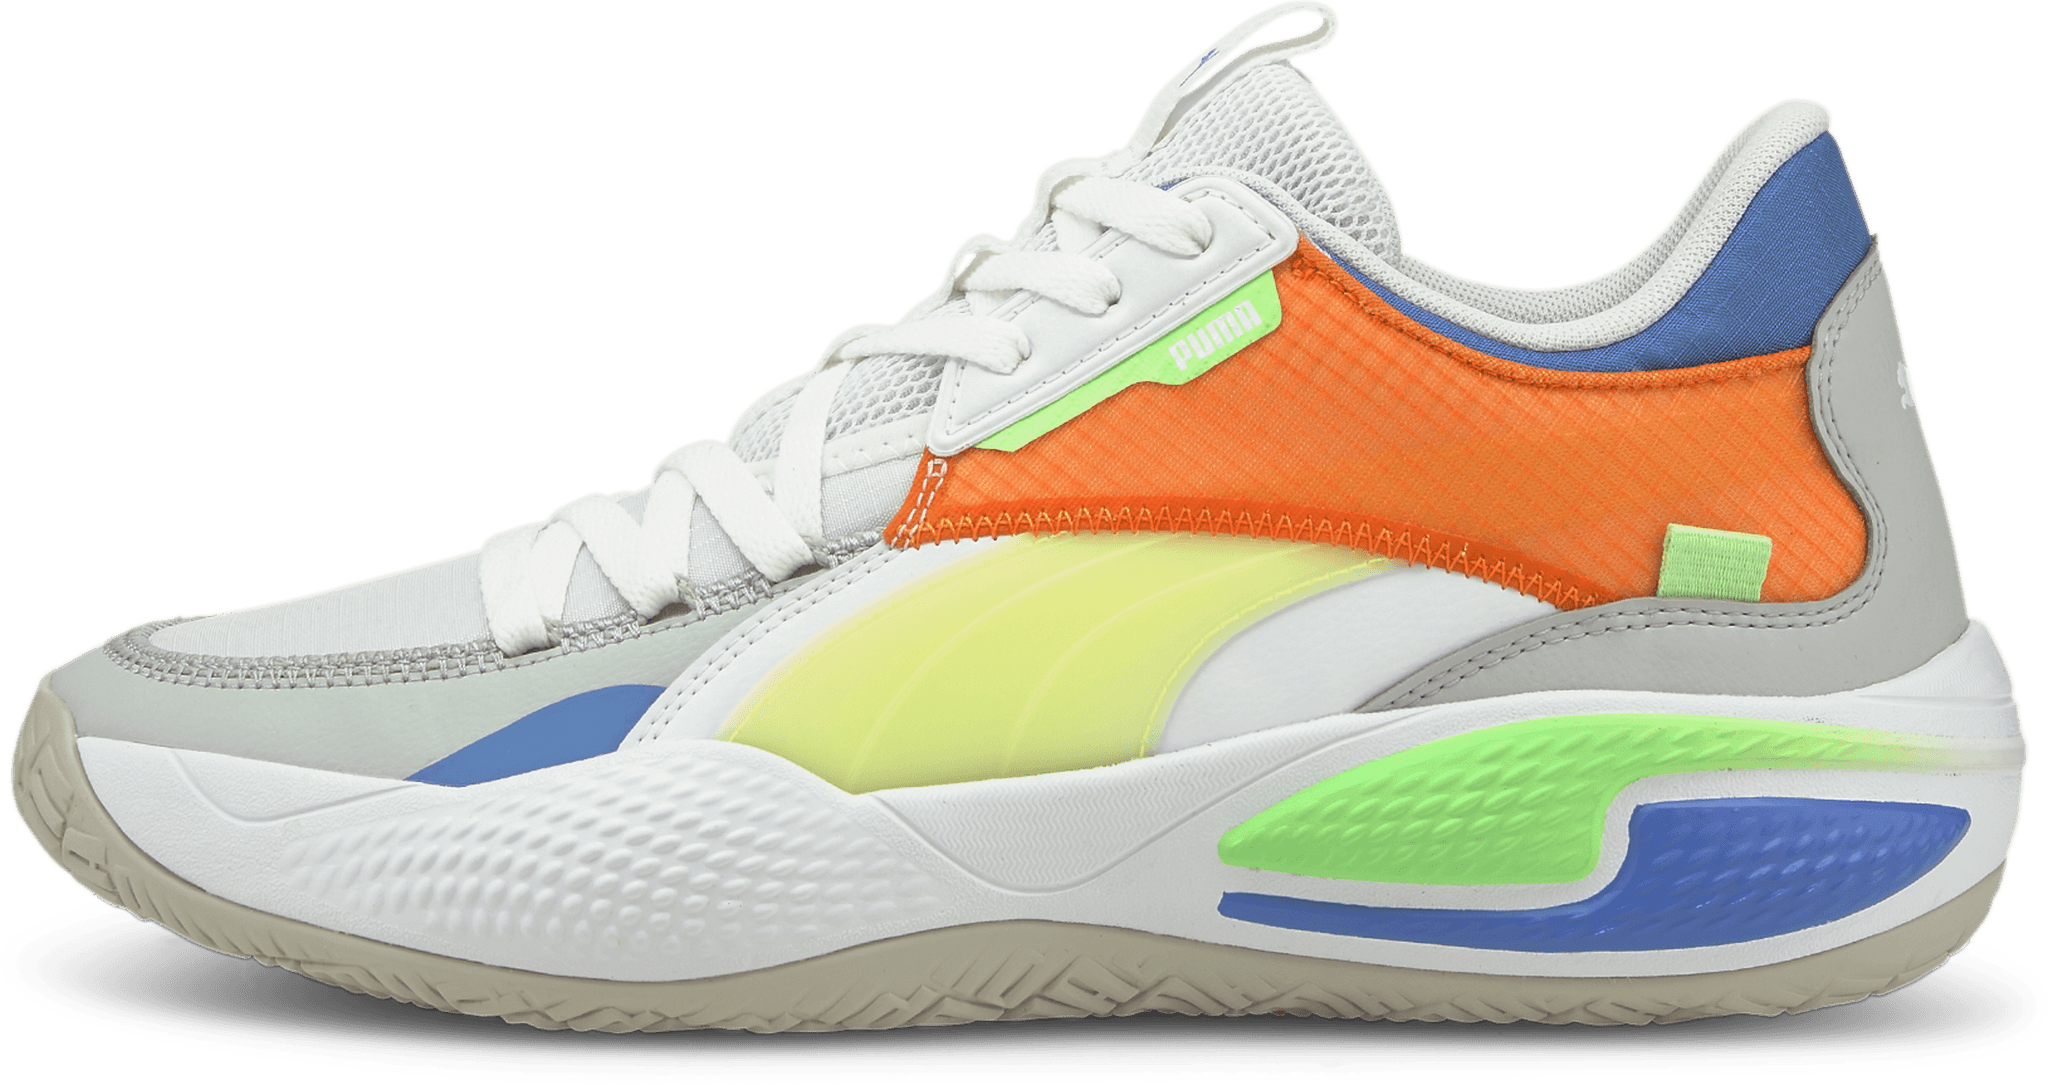 Puma Court Rider - Review, Deals, Pics of all Colorways